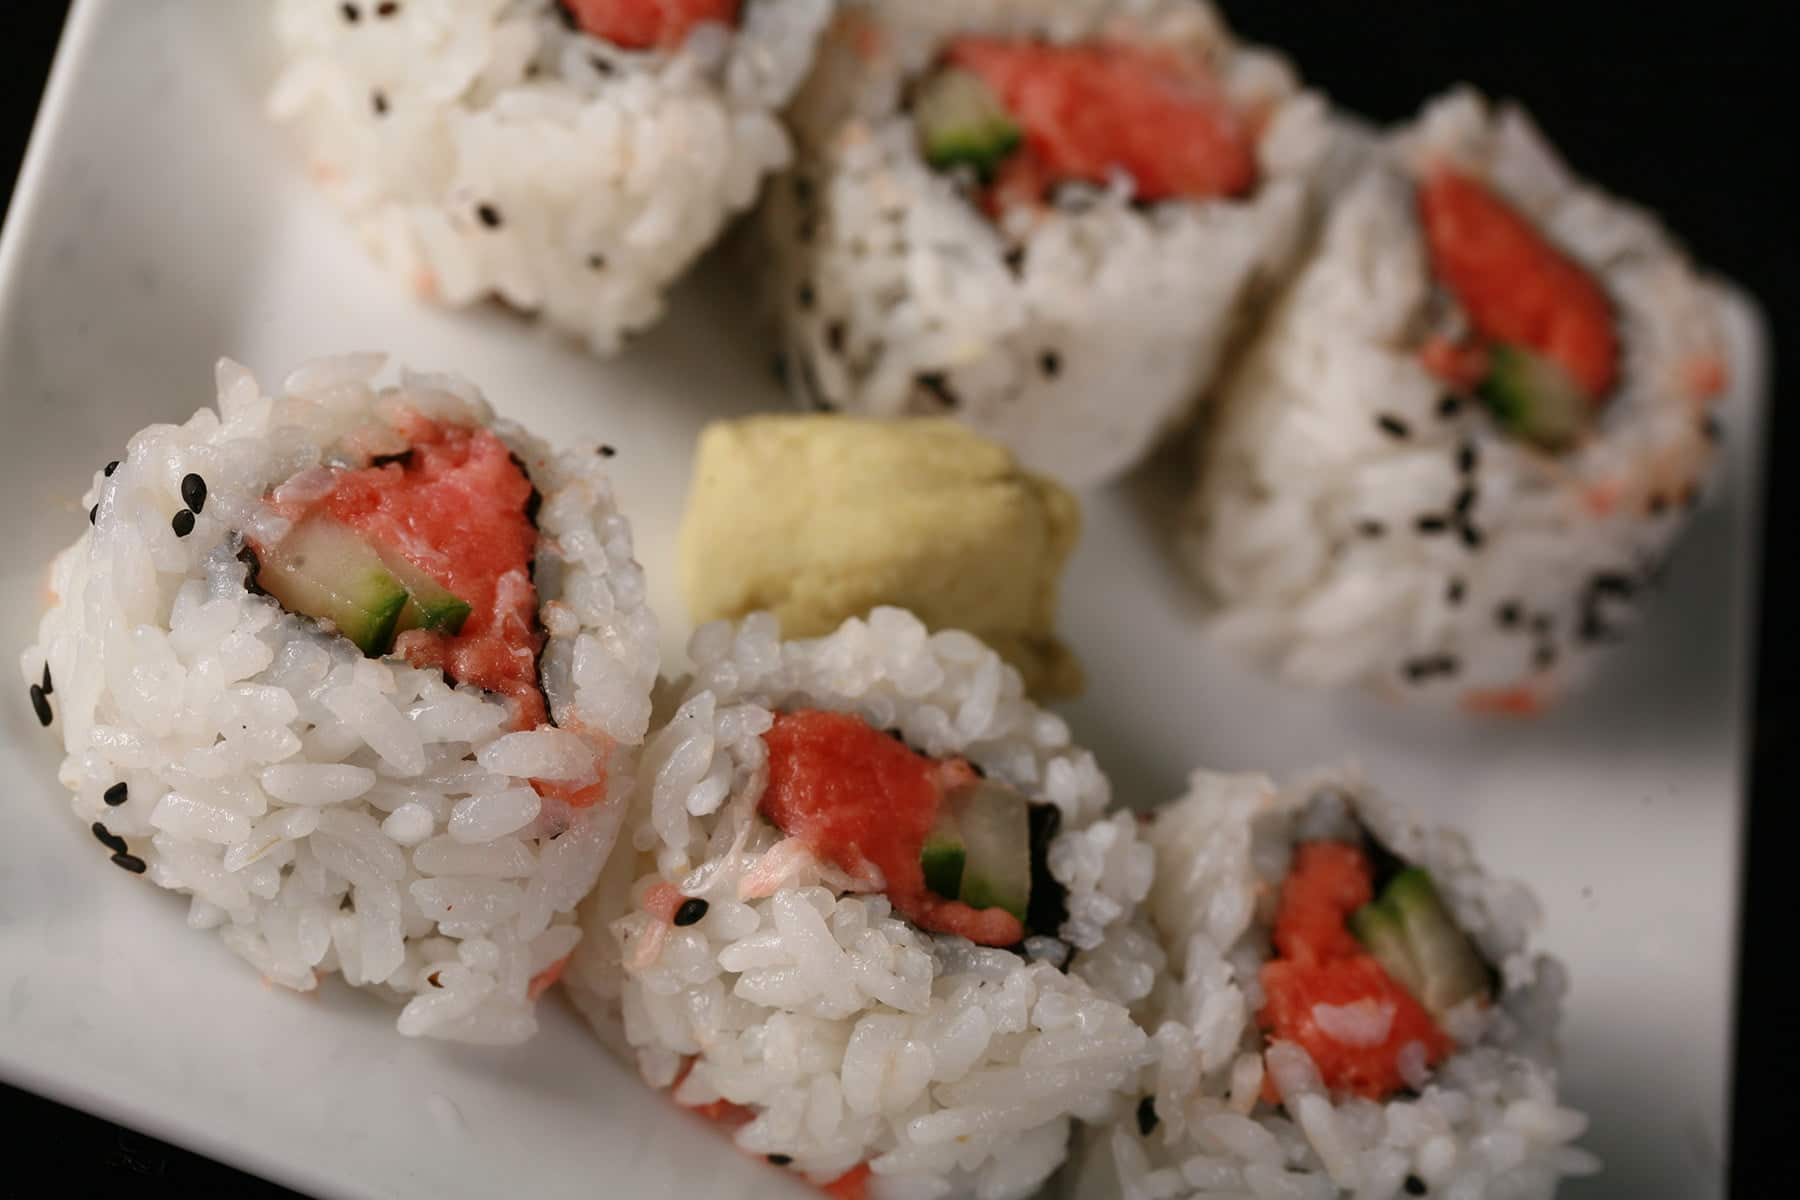 6 pieces of spicy tuna sushi roll are arranged on a white plate, with a glob of wasabi in the middle.